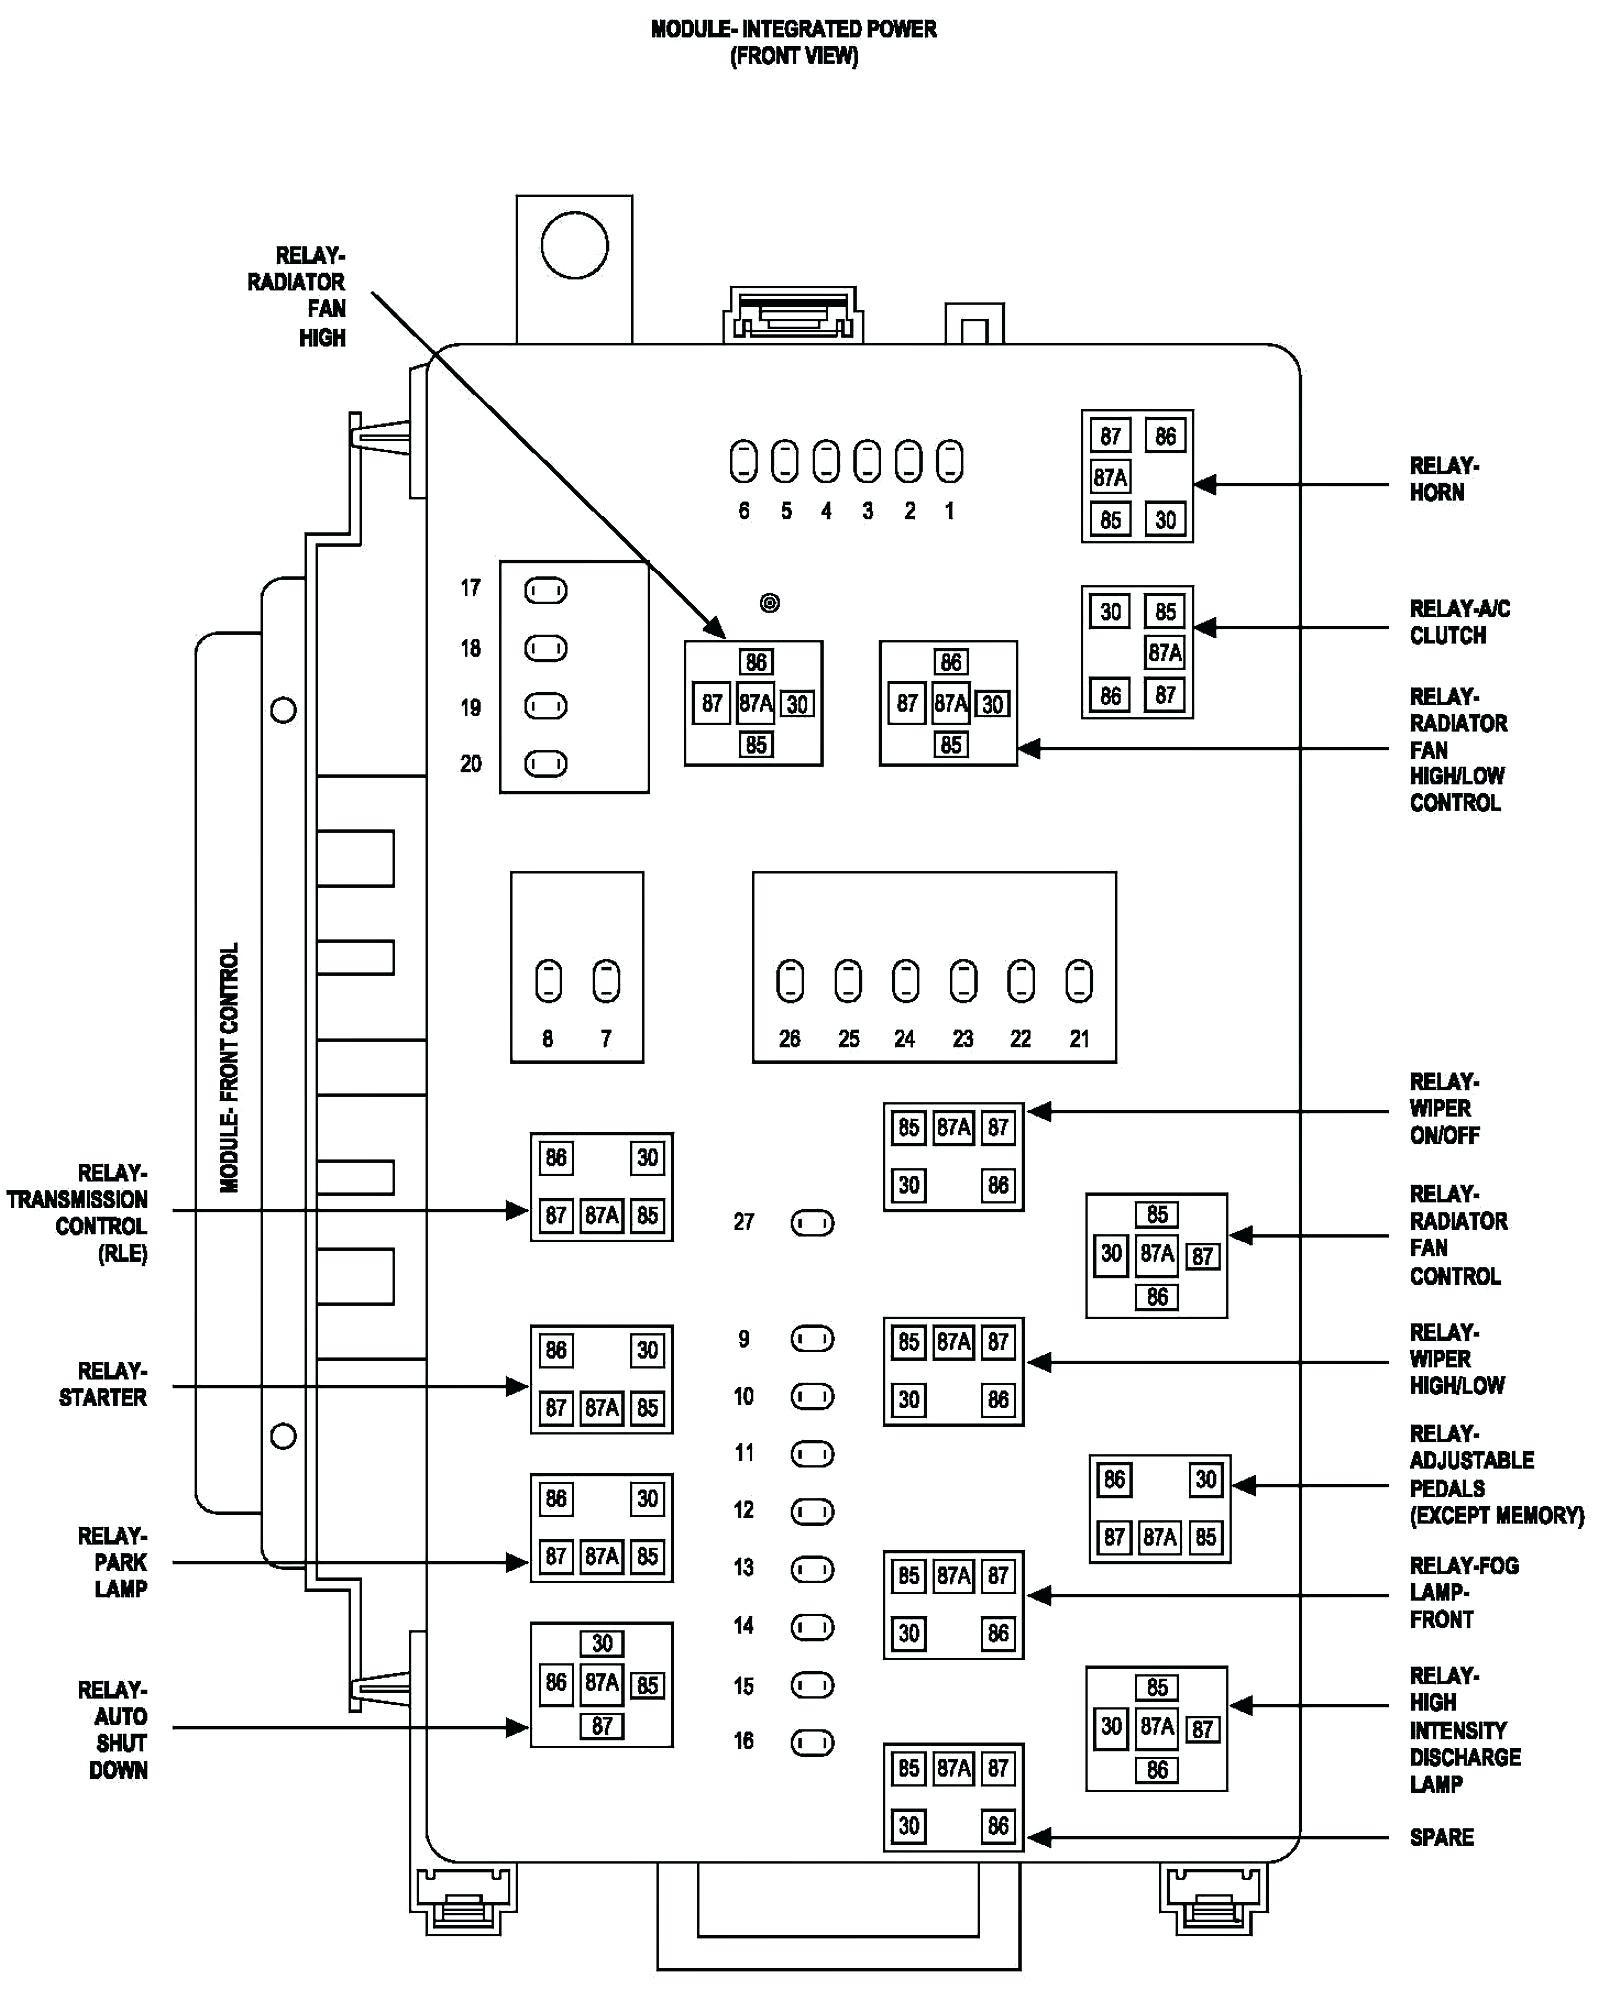 hight resolution of 2008 magnum fuse diagram wiring diagram expert 05 dodge magnum interior fuse box diagram 05 magnum fuse diagram